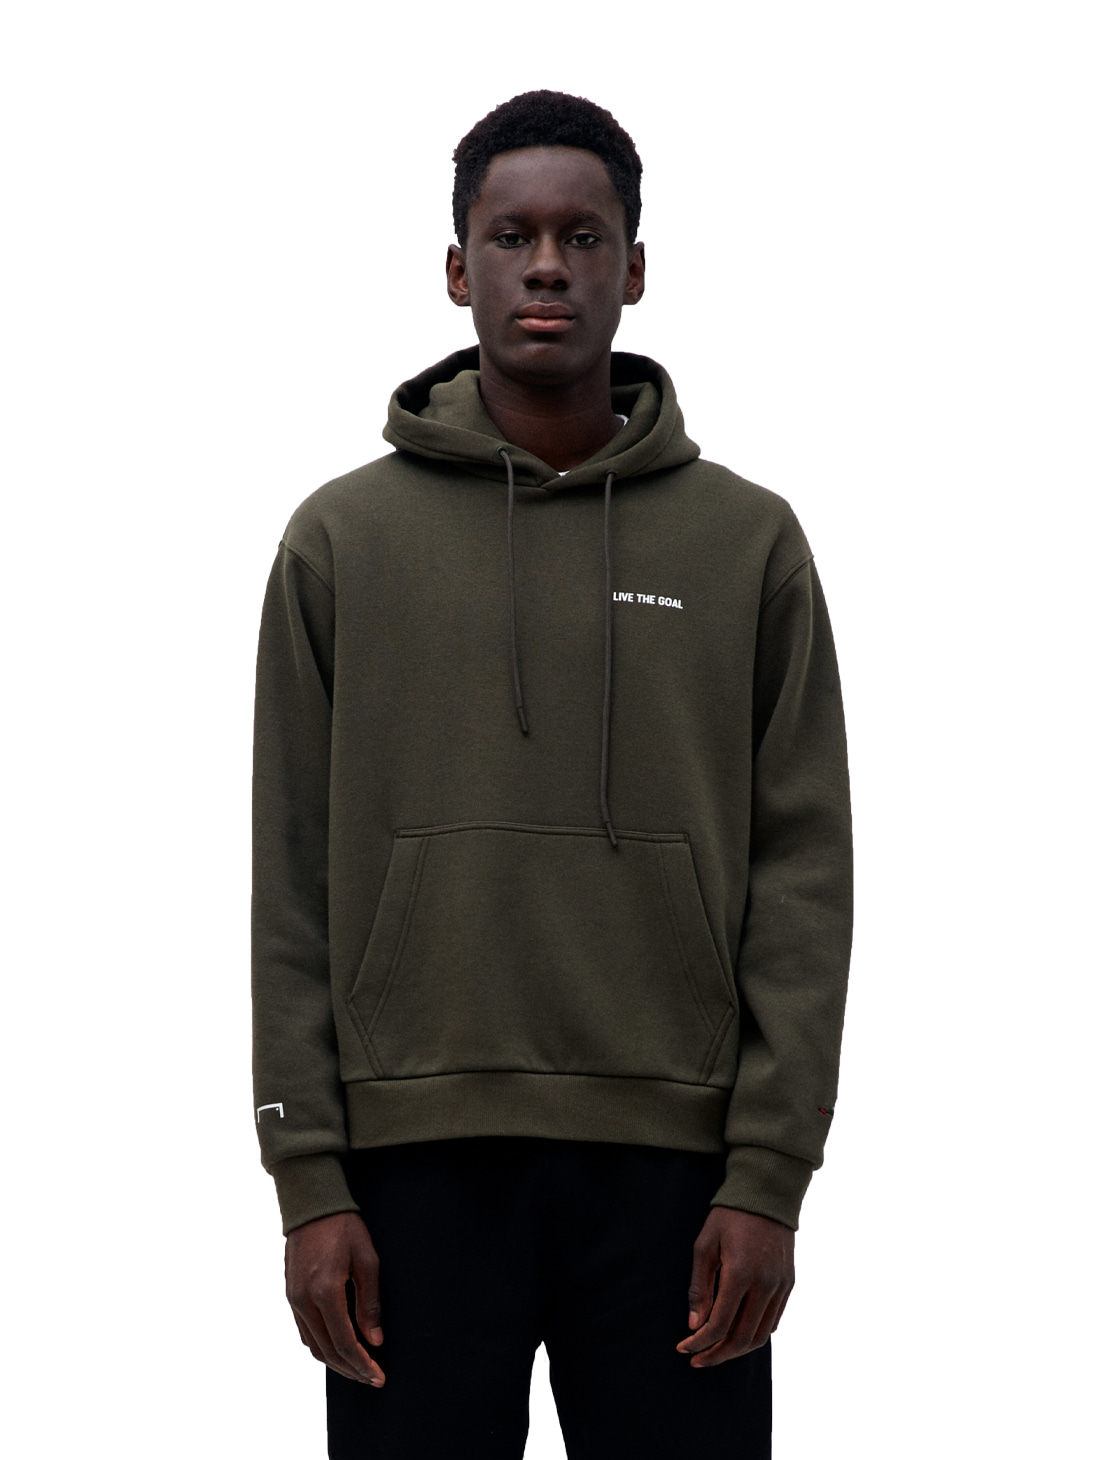 GOALSTUDIO LIVE THE GOAL HOODIE - KHAKI